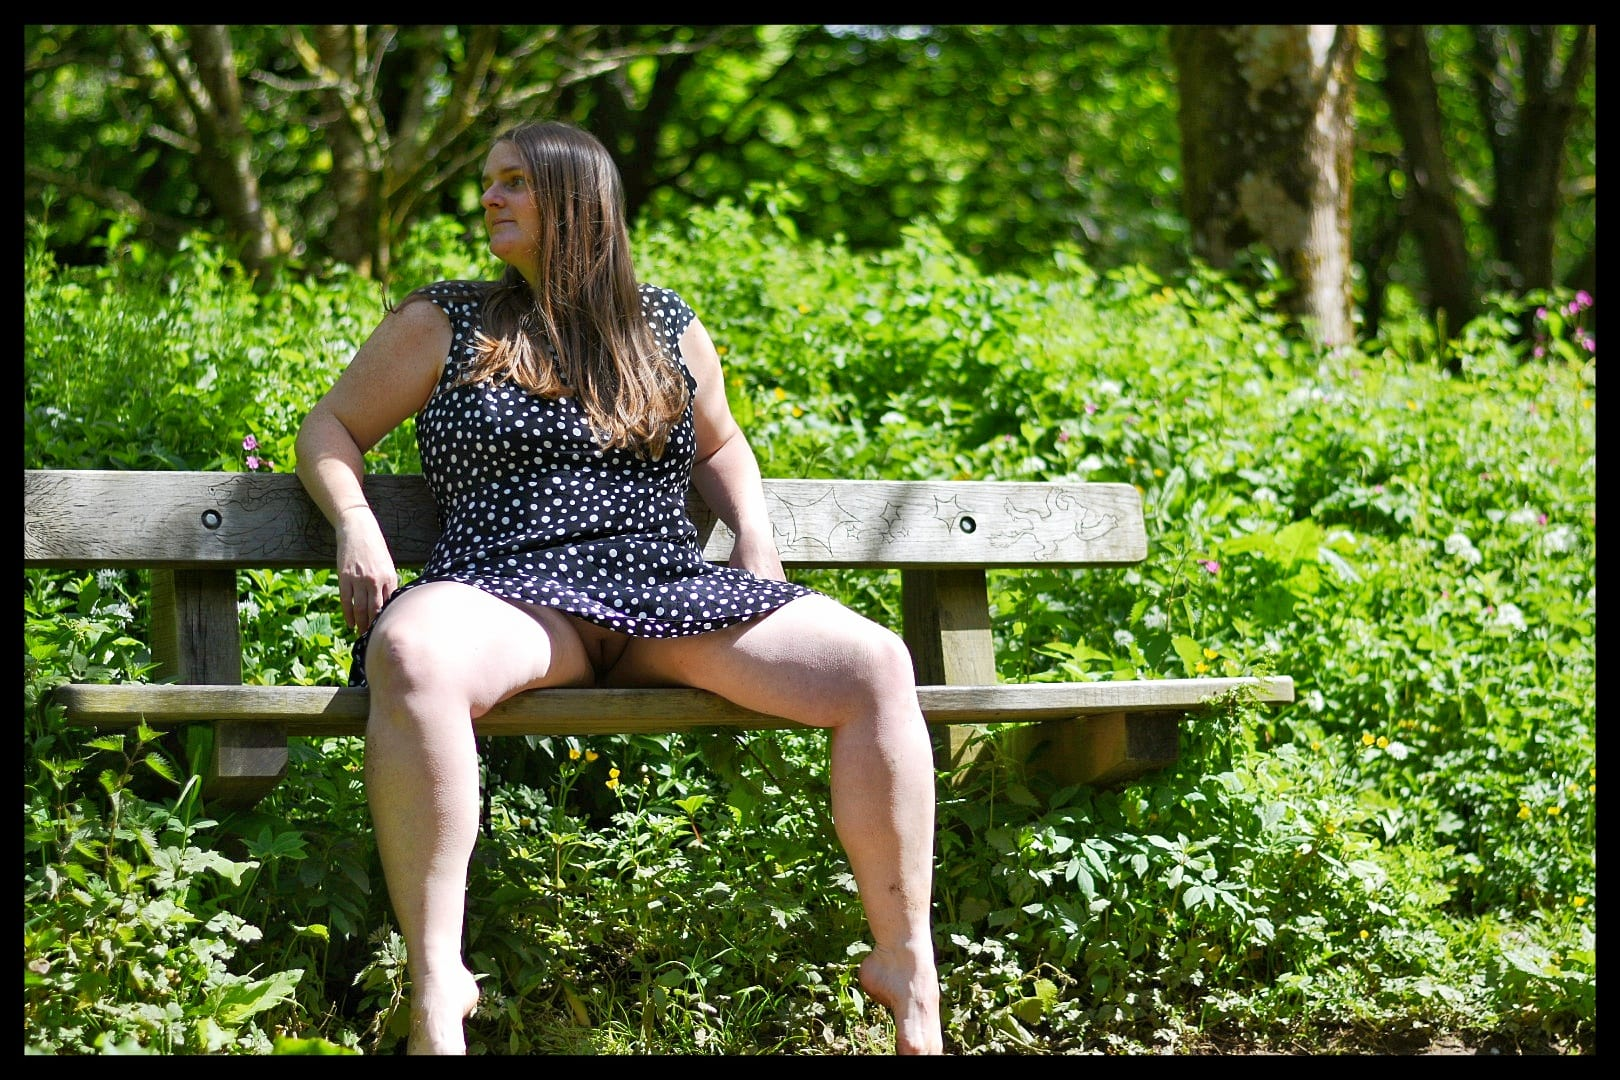 A barefoot girl on a bench.